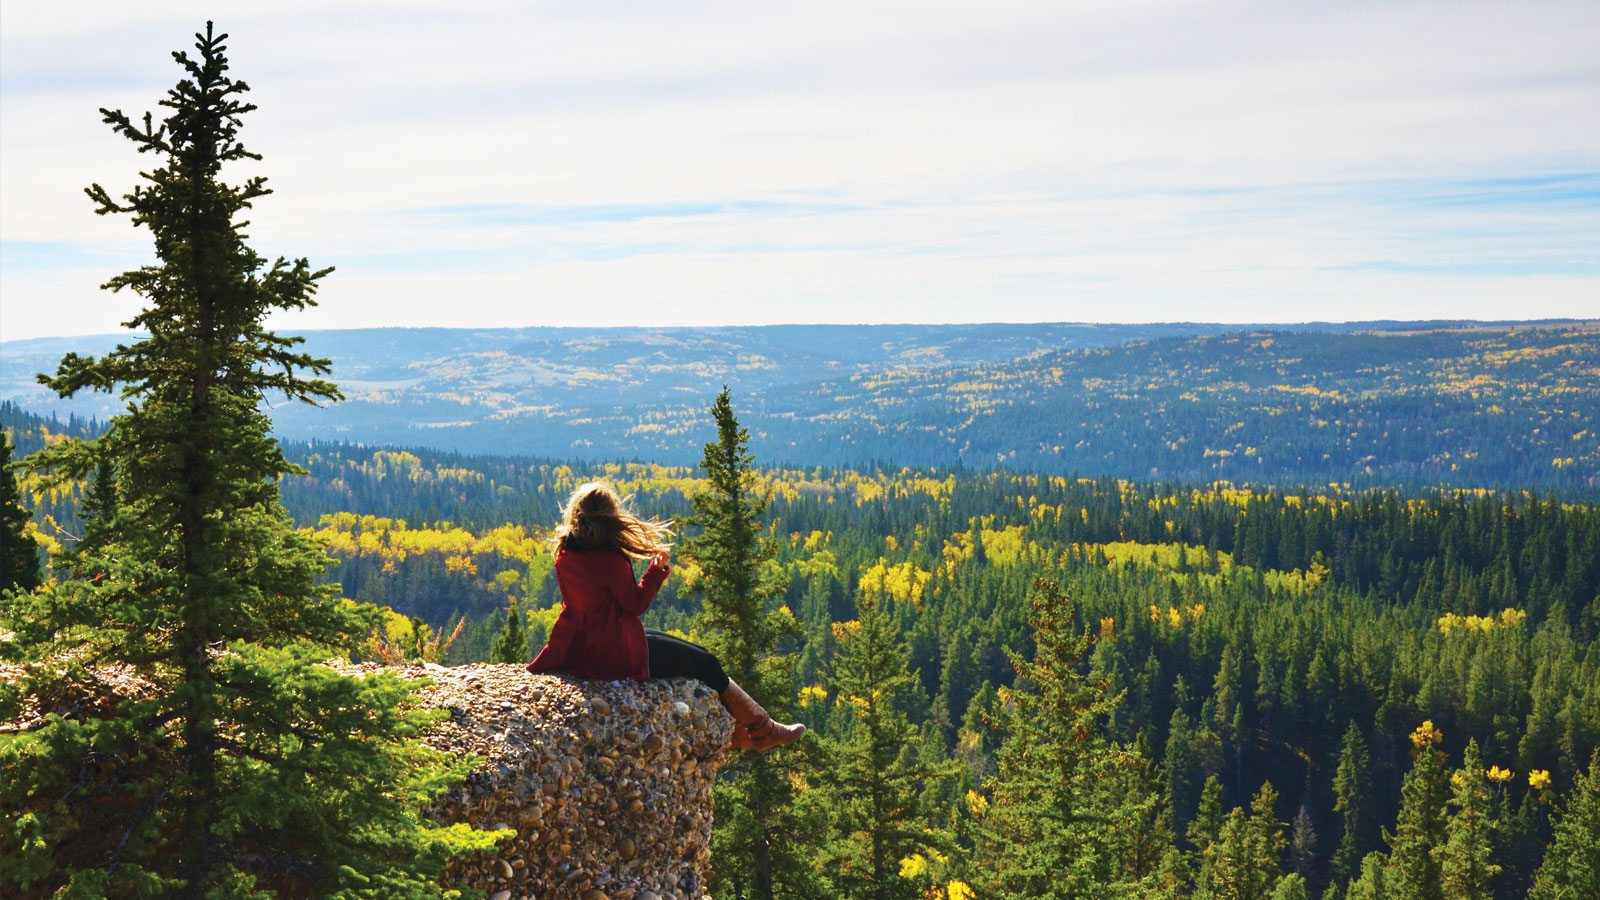 The From View Conglomerate Cliffs Within Cypress Hills Interprovincial Park Photo Ashlyn George